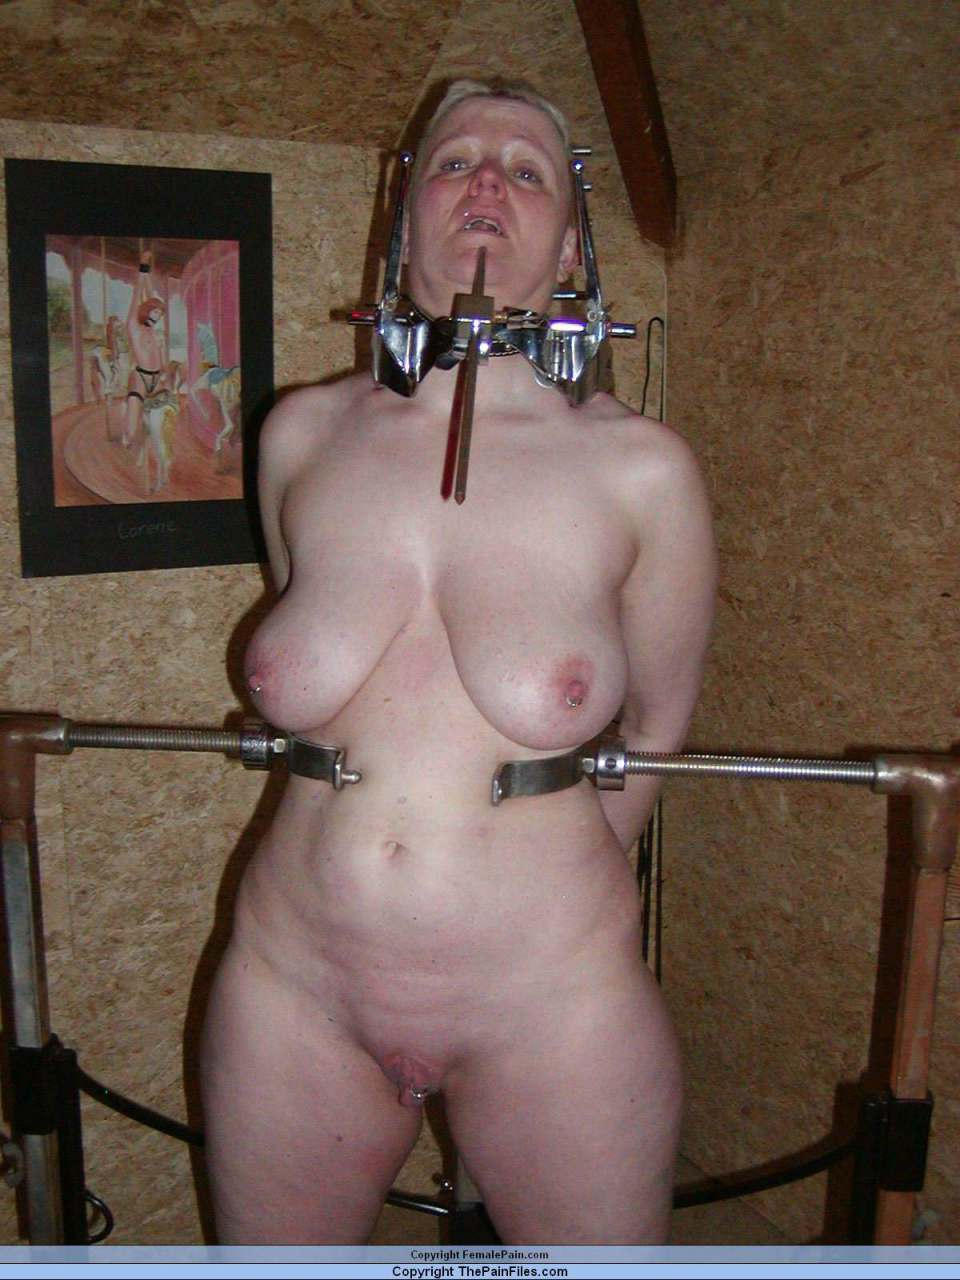 Above mature nude women in bondage